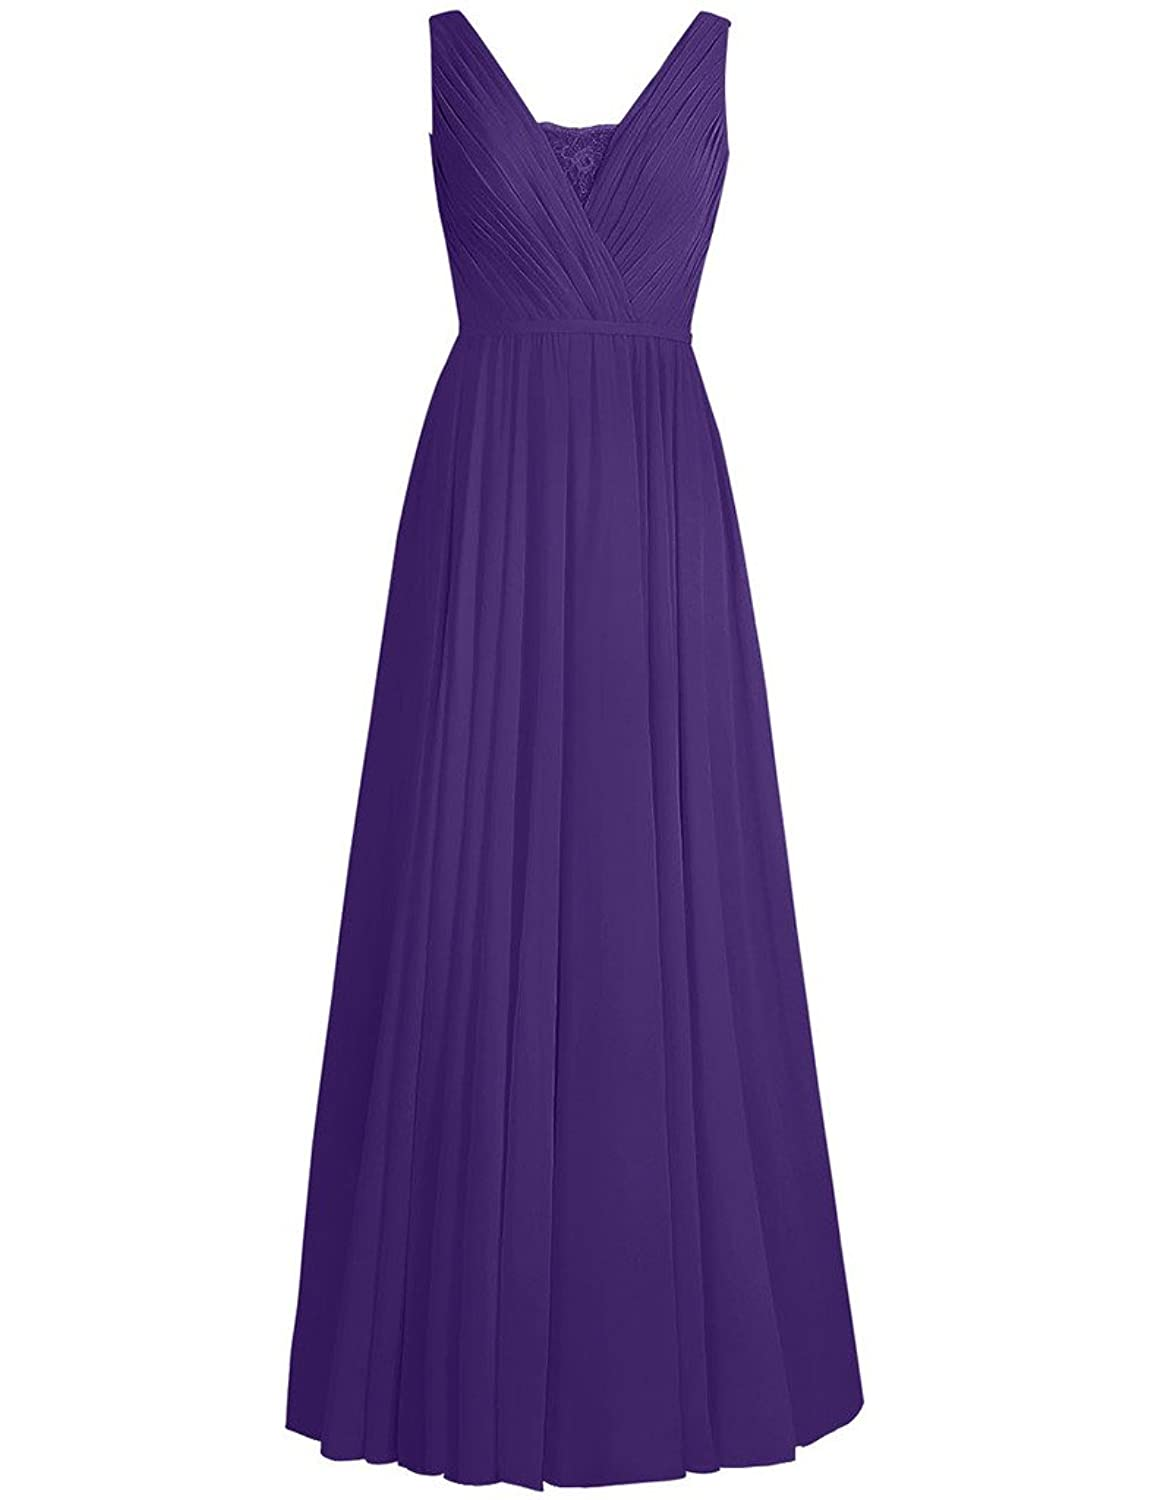 HUINI Lace Sheer V-Neck Long Chiffon Bridesmaid Prom Dresses Party Formal Gowns UK26W